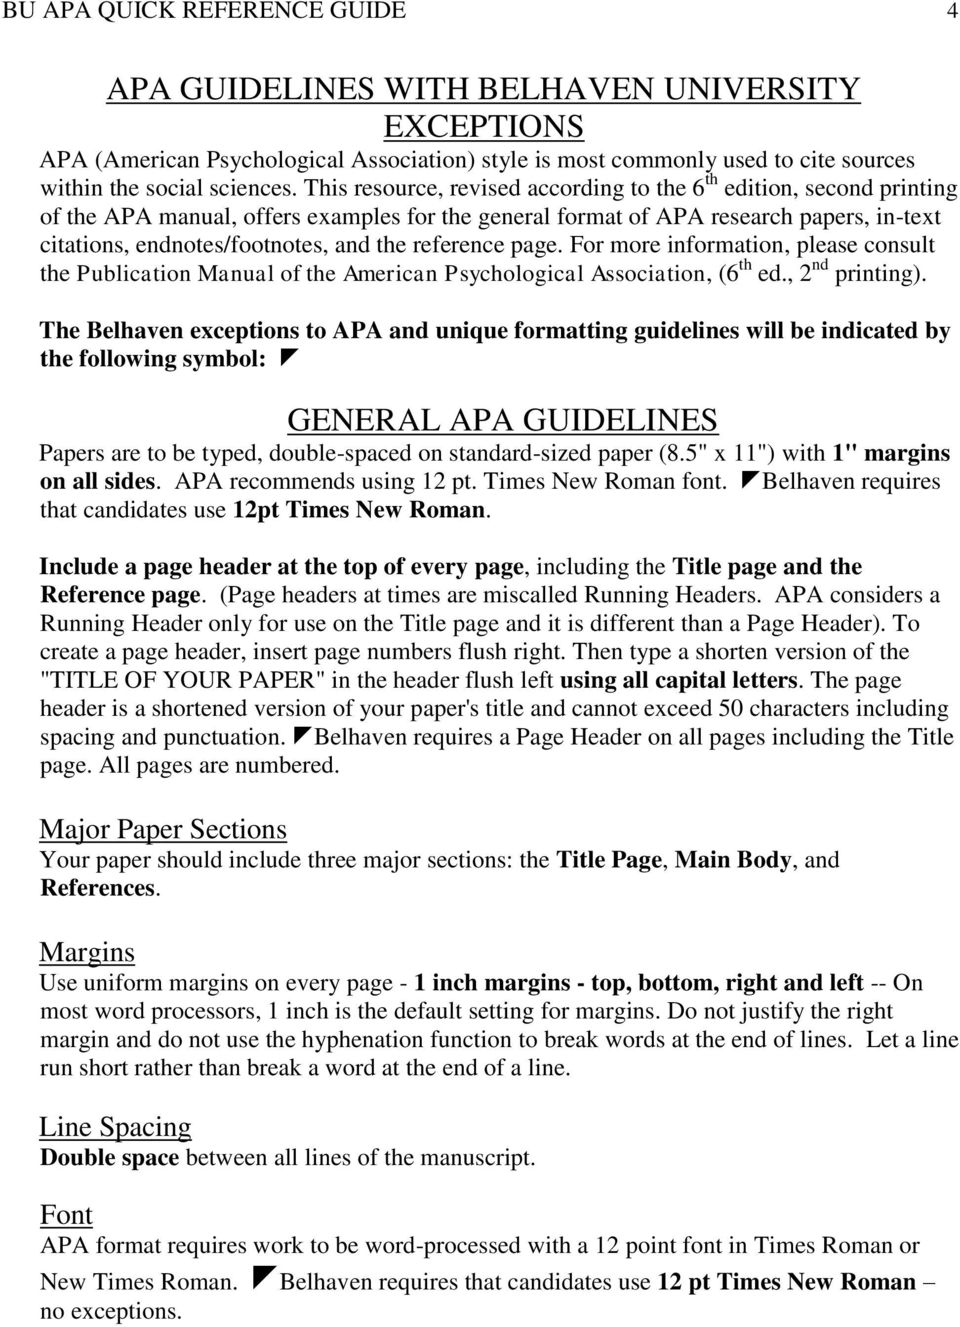 apa formating guide